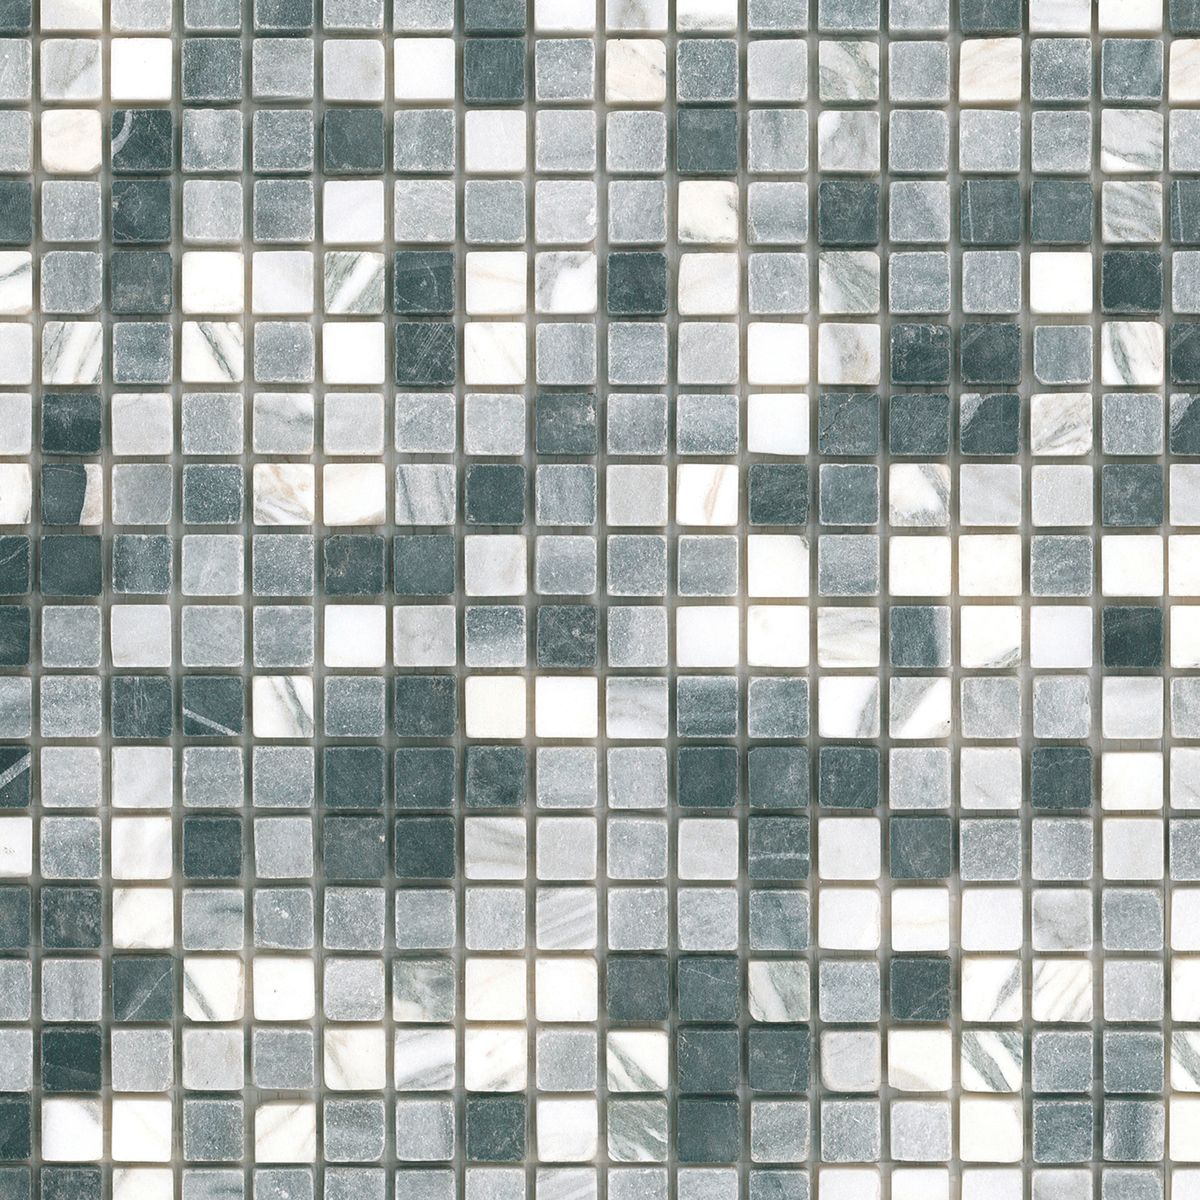 Piastrelle mosaico obi cool simply x cm with piastrelle mosaico obi excellent acquistare for Mosaico leroy merlin